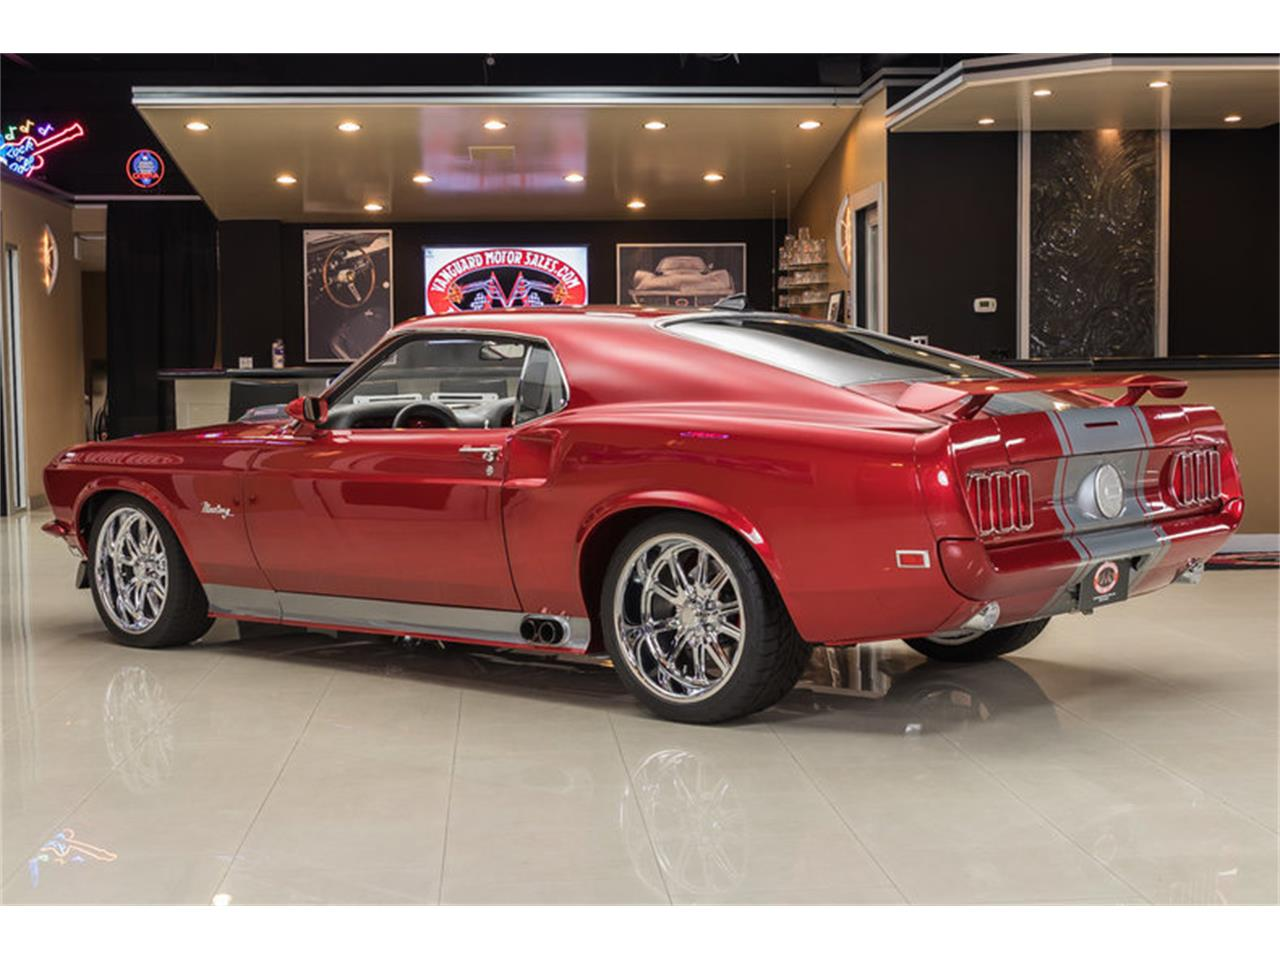 Large Picture of Classic 1969 Ford Mustang Fastback Restomod - $194,900.00 Offered by Vanguard Motor Sales - L6C8